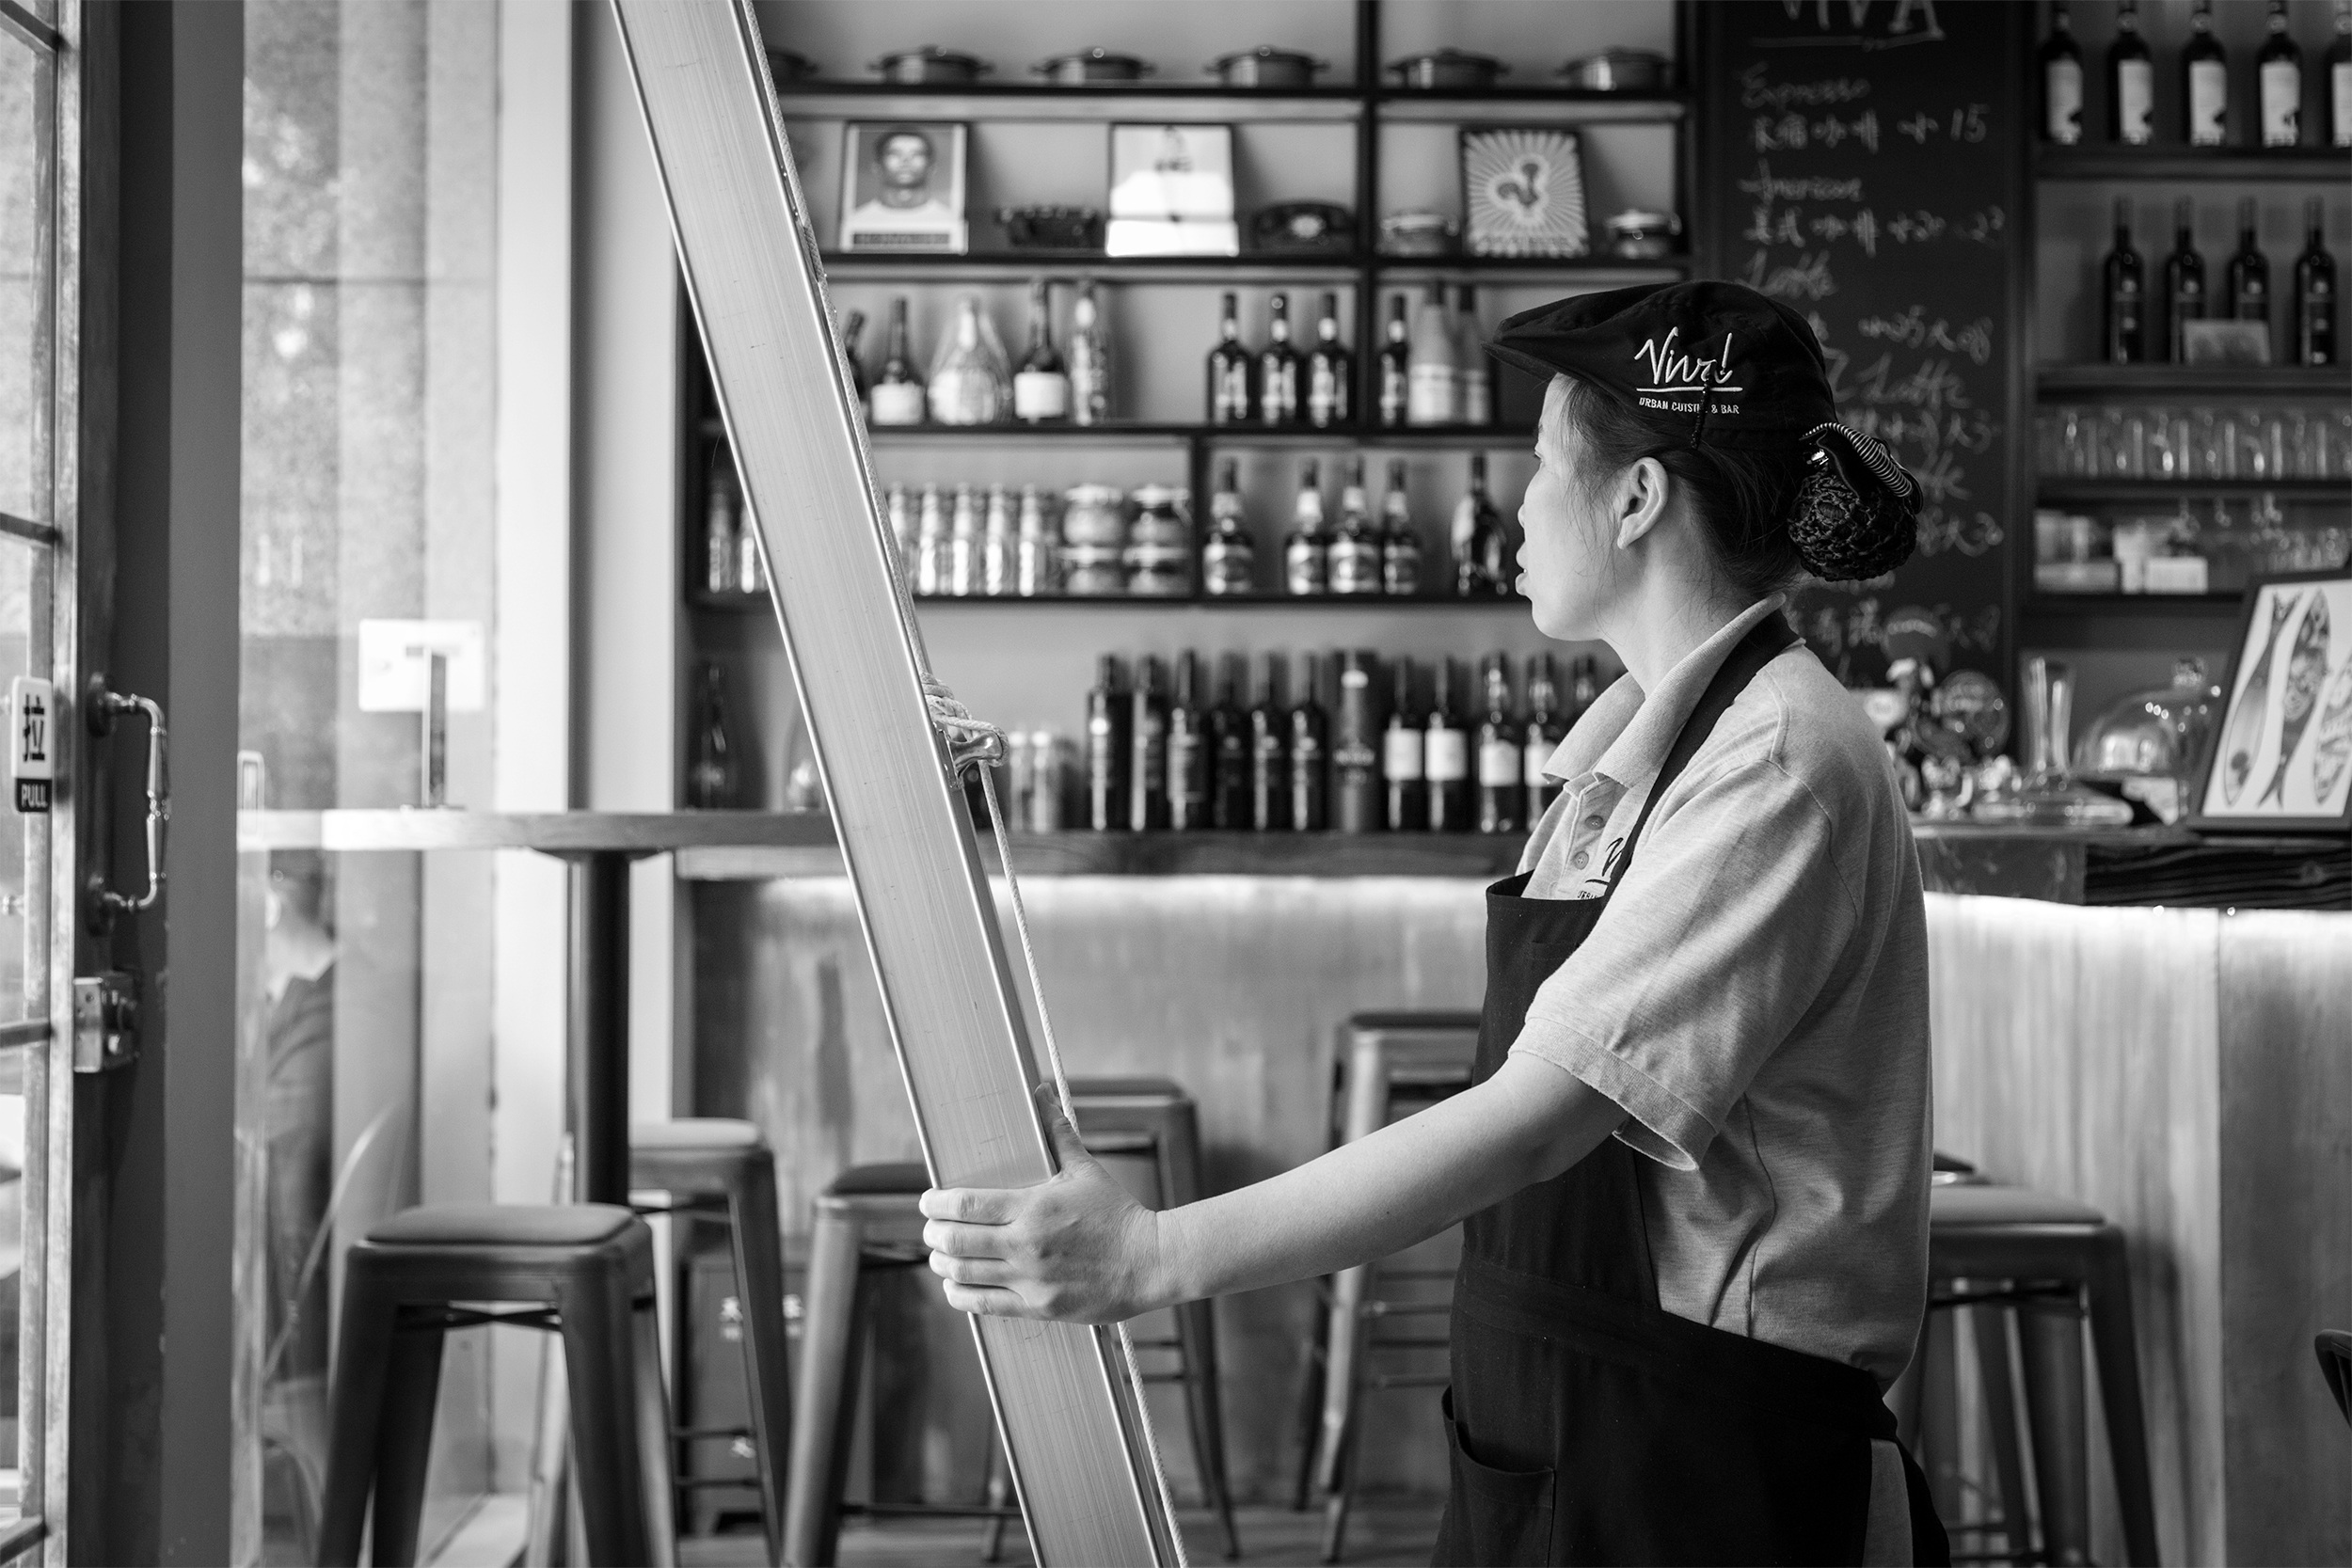 How To Catch And Avoid Employee Theft In Restaurants